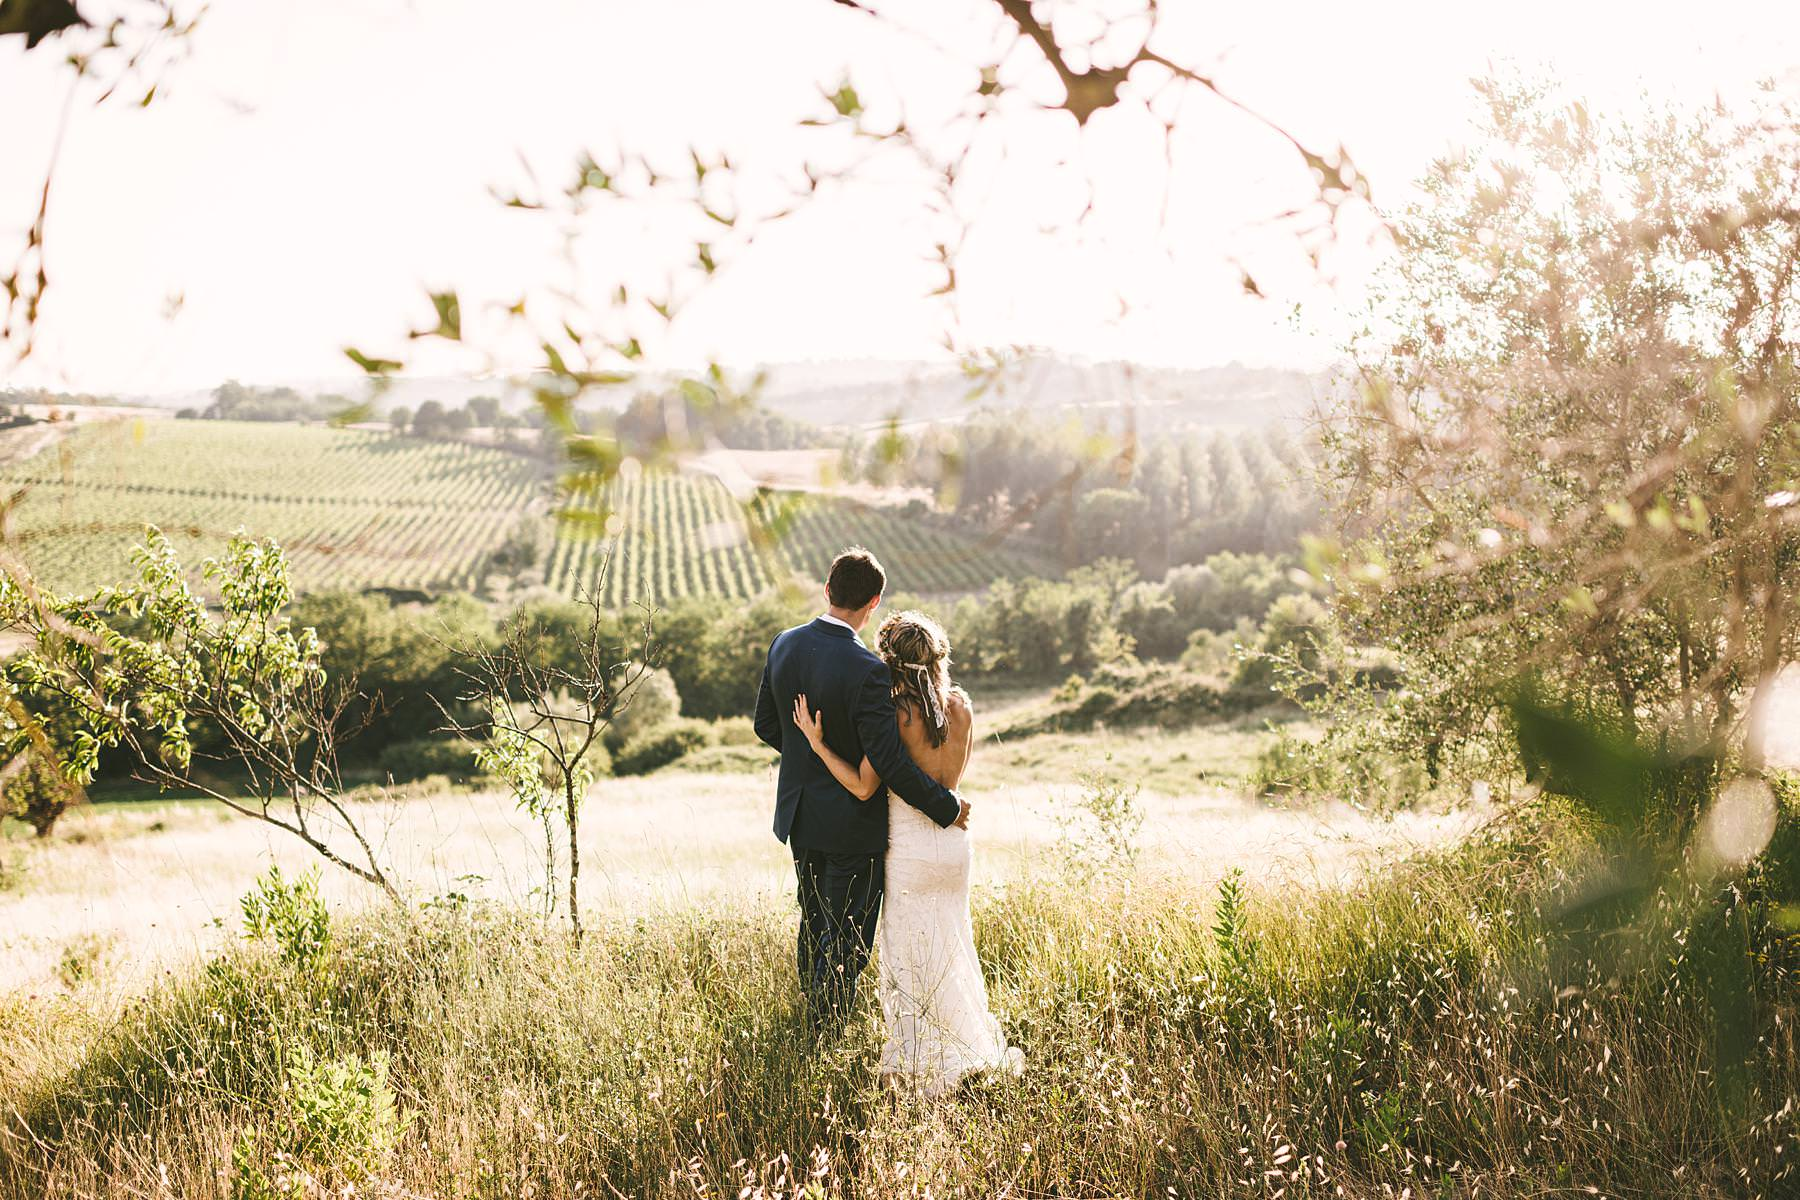 Intimate destination wedding portrait in the warm, golden light of sunset at Villa La Torre country house located in the Montechiaro countryside area